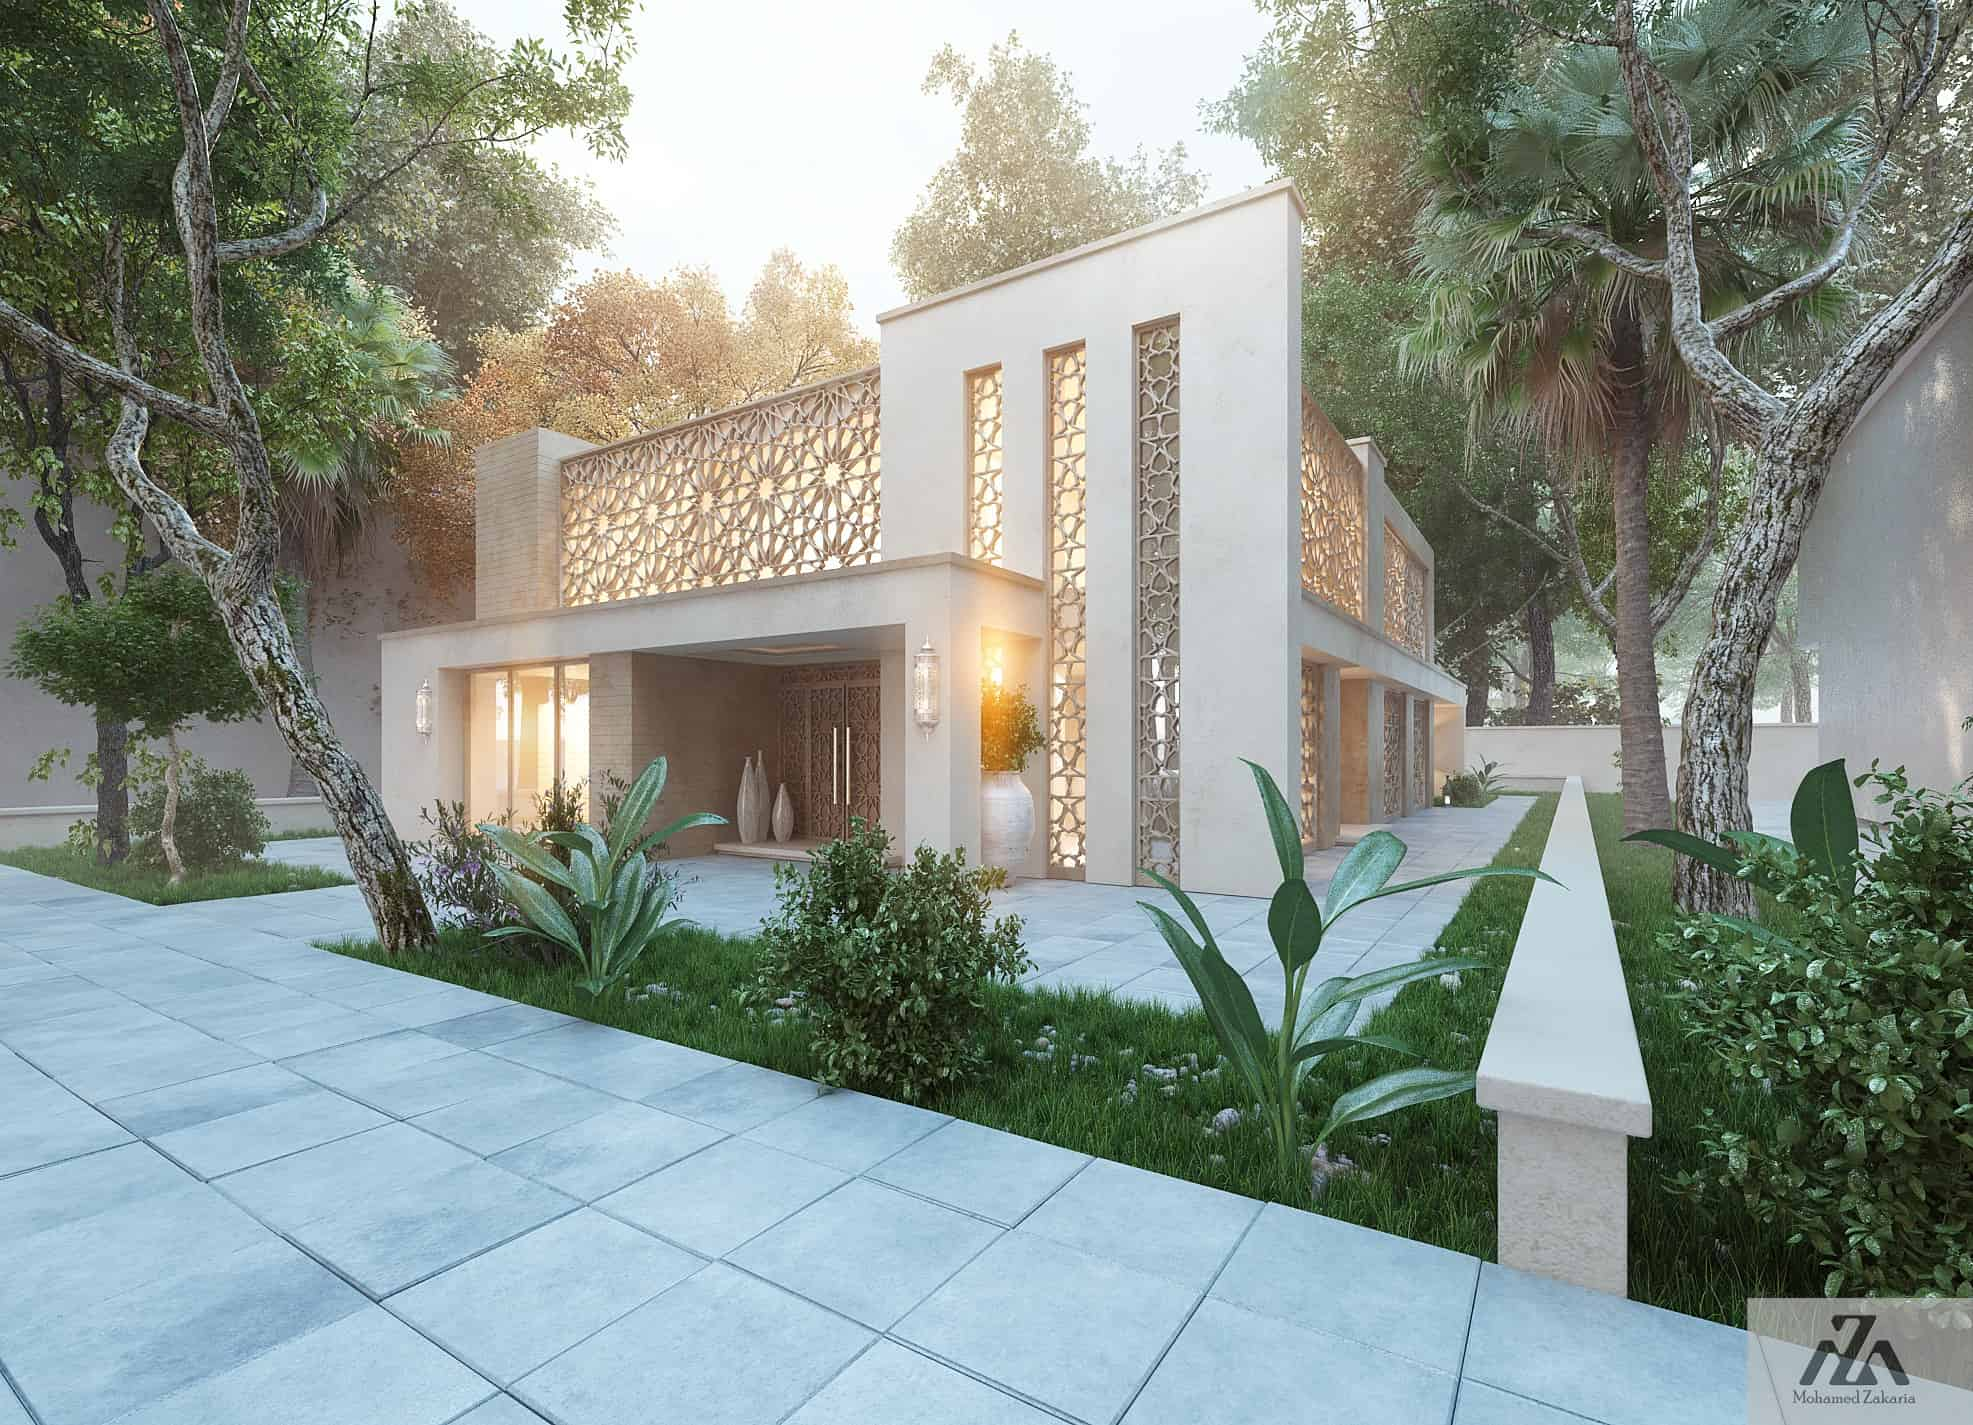 Arabic modern house by mohamed zakaria design ideas for Architecture islamique moderne